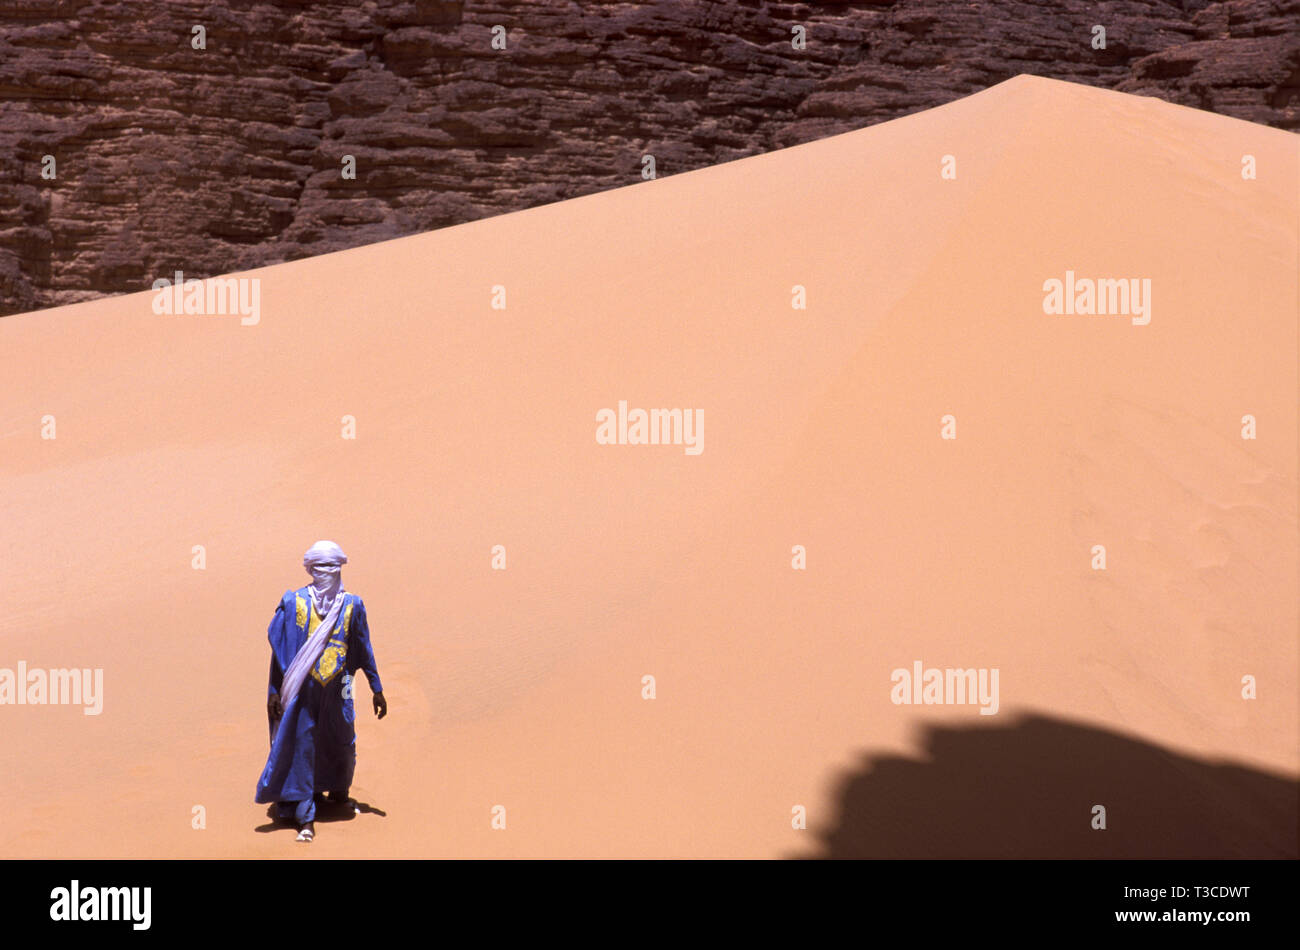 Tuareg man in a traditional costume walking on a dune, Algeria - Stock Image